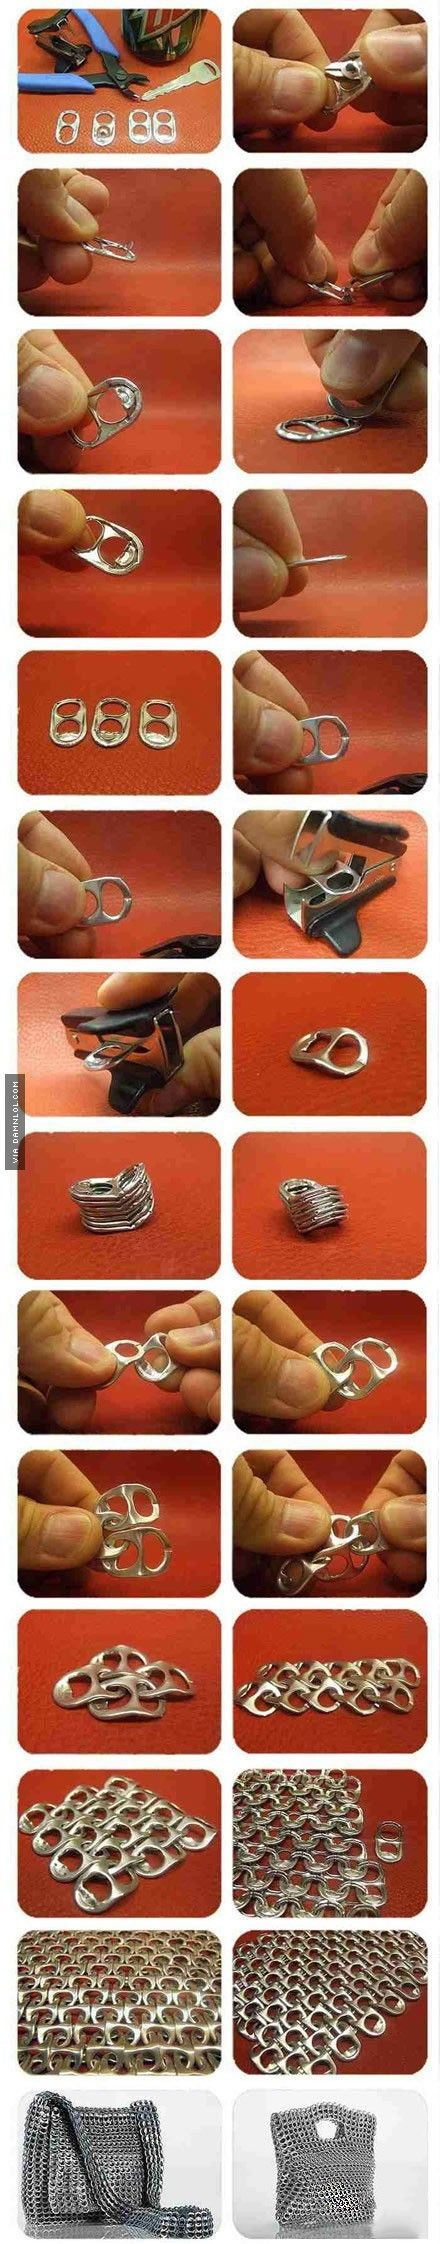 What You Can Accomplish With A Few Ring Pulls - Damn! LOL